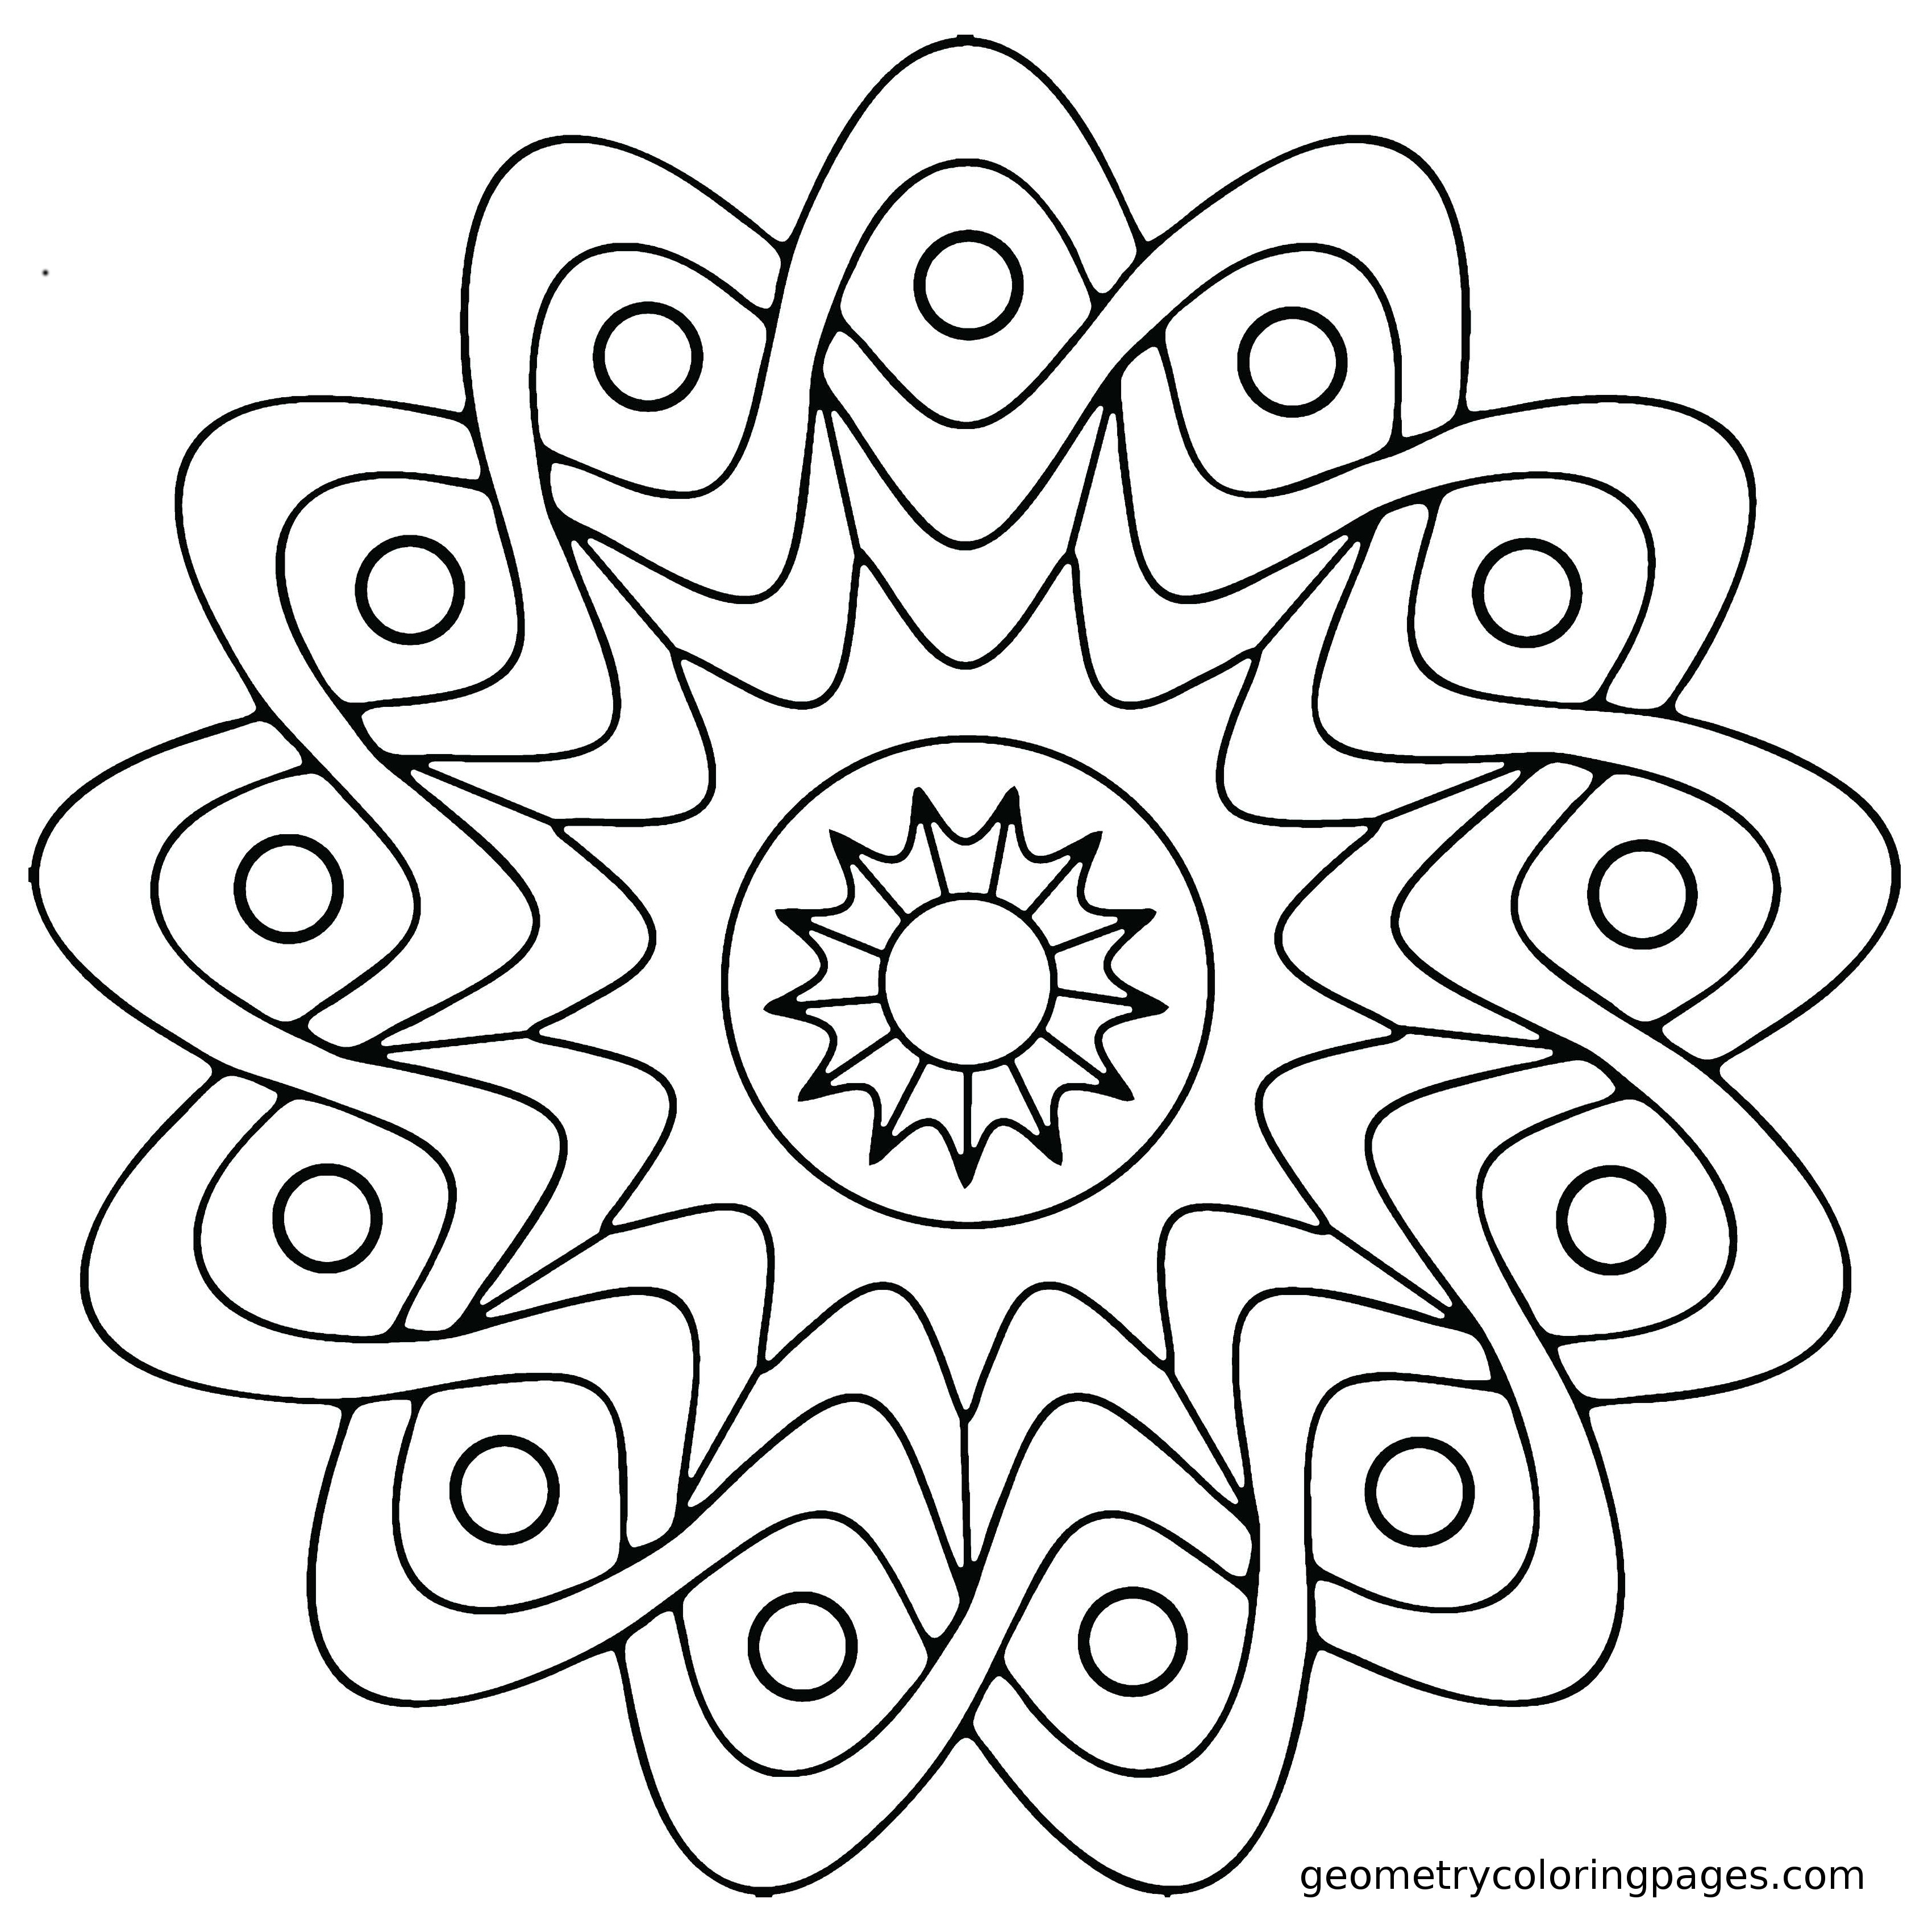 3400x3400 Simple Mandala With Flower Coloring Page For Pages